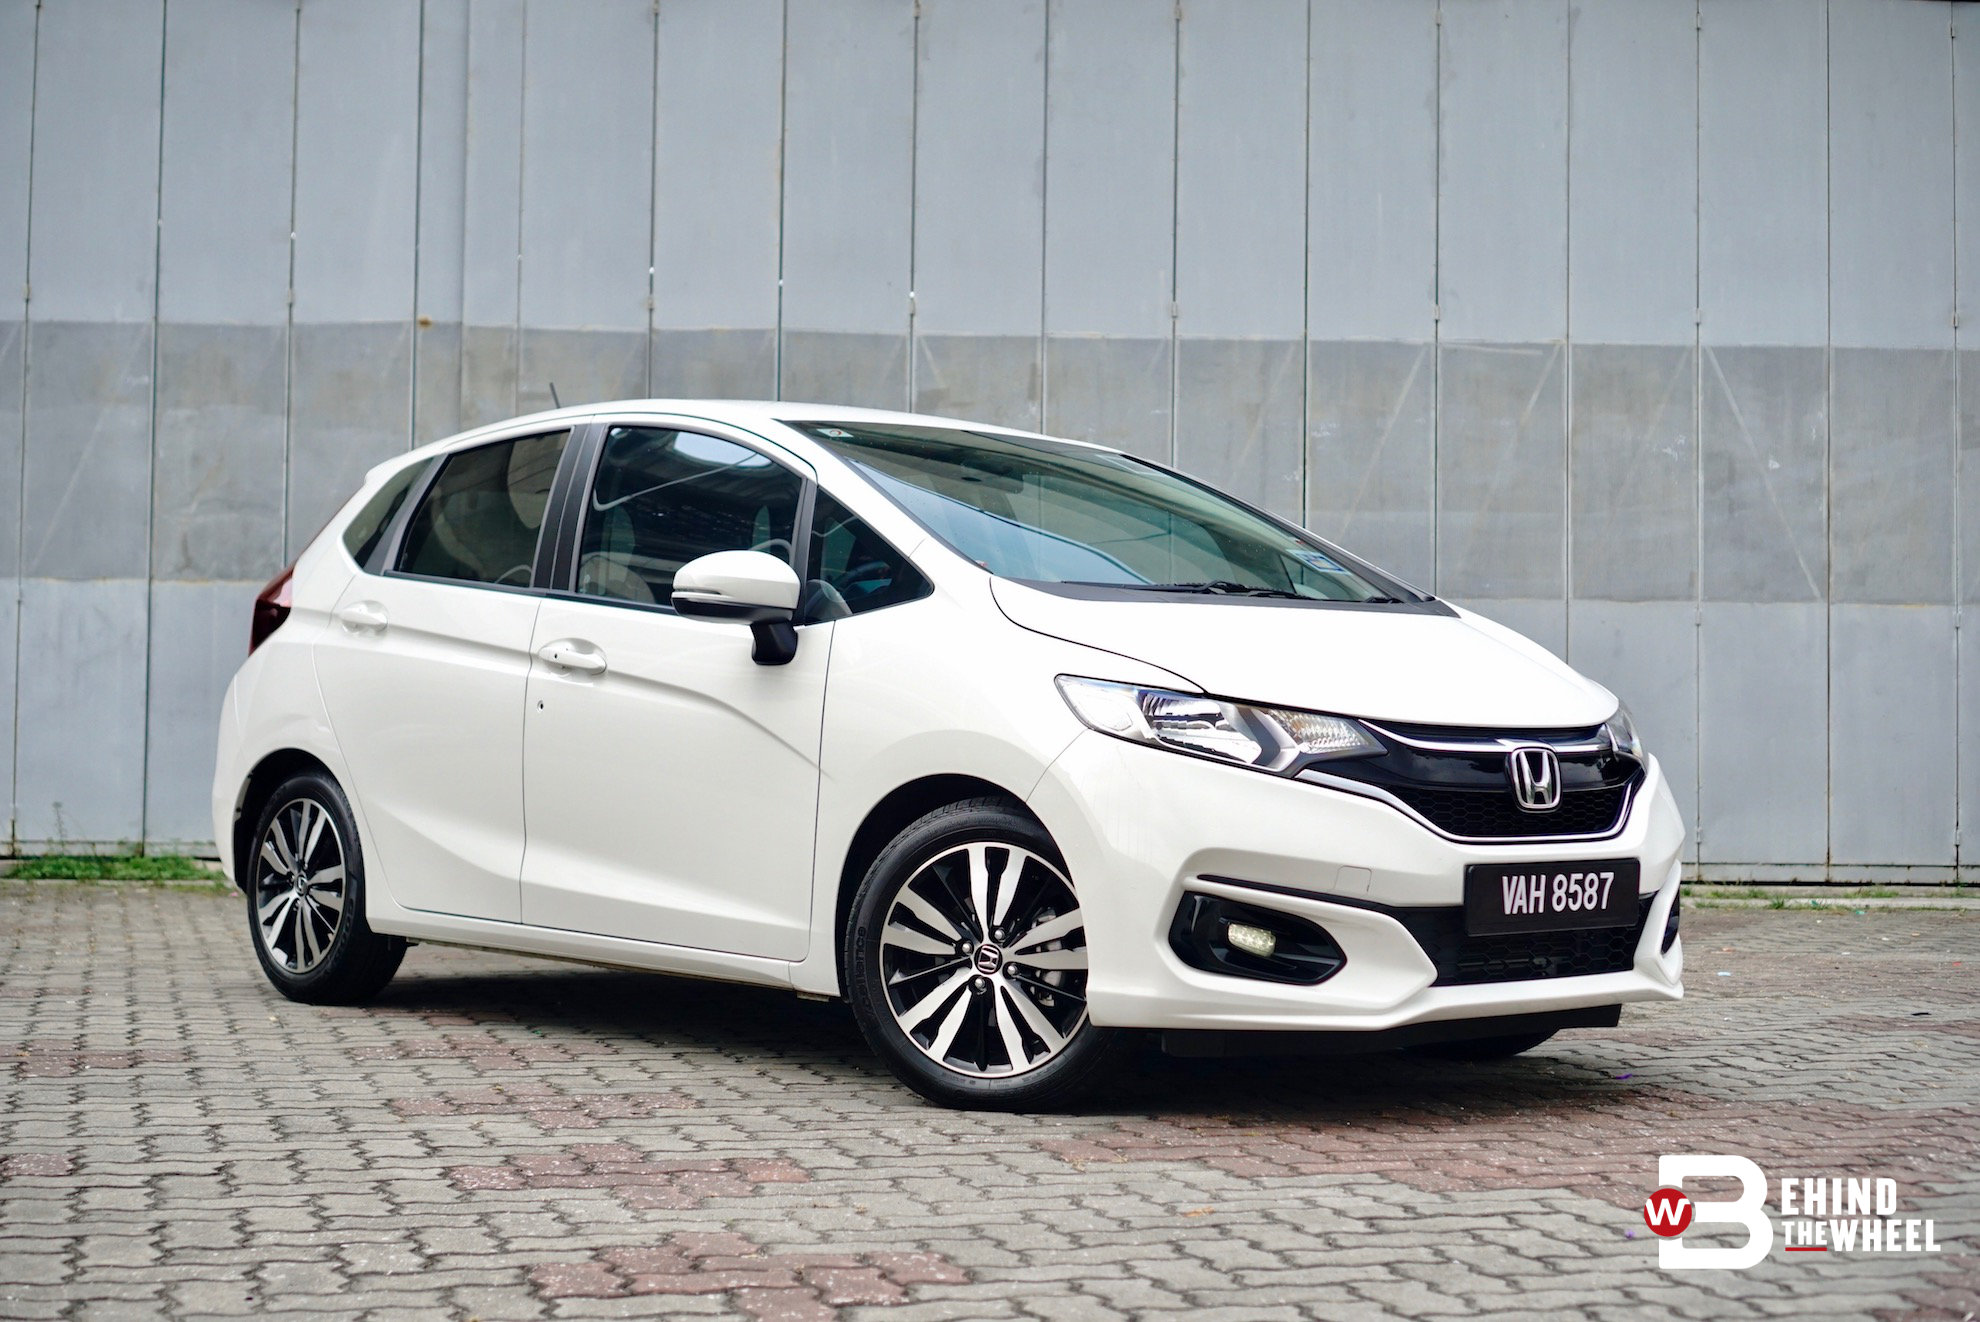 honda jazz v review compact body colossal interior